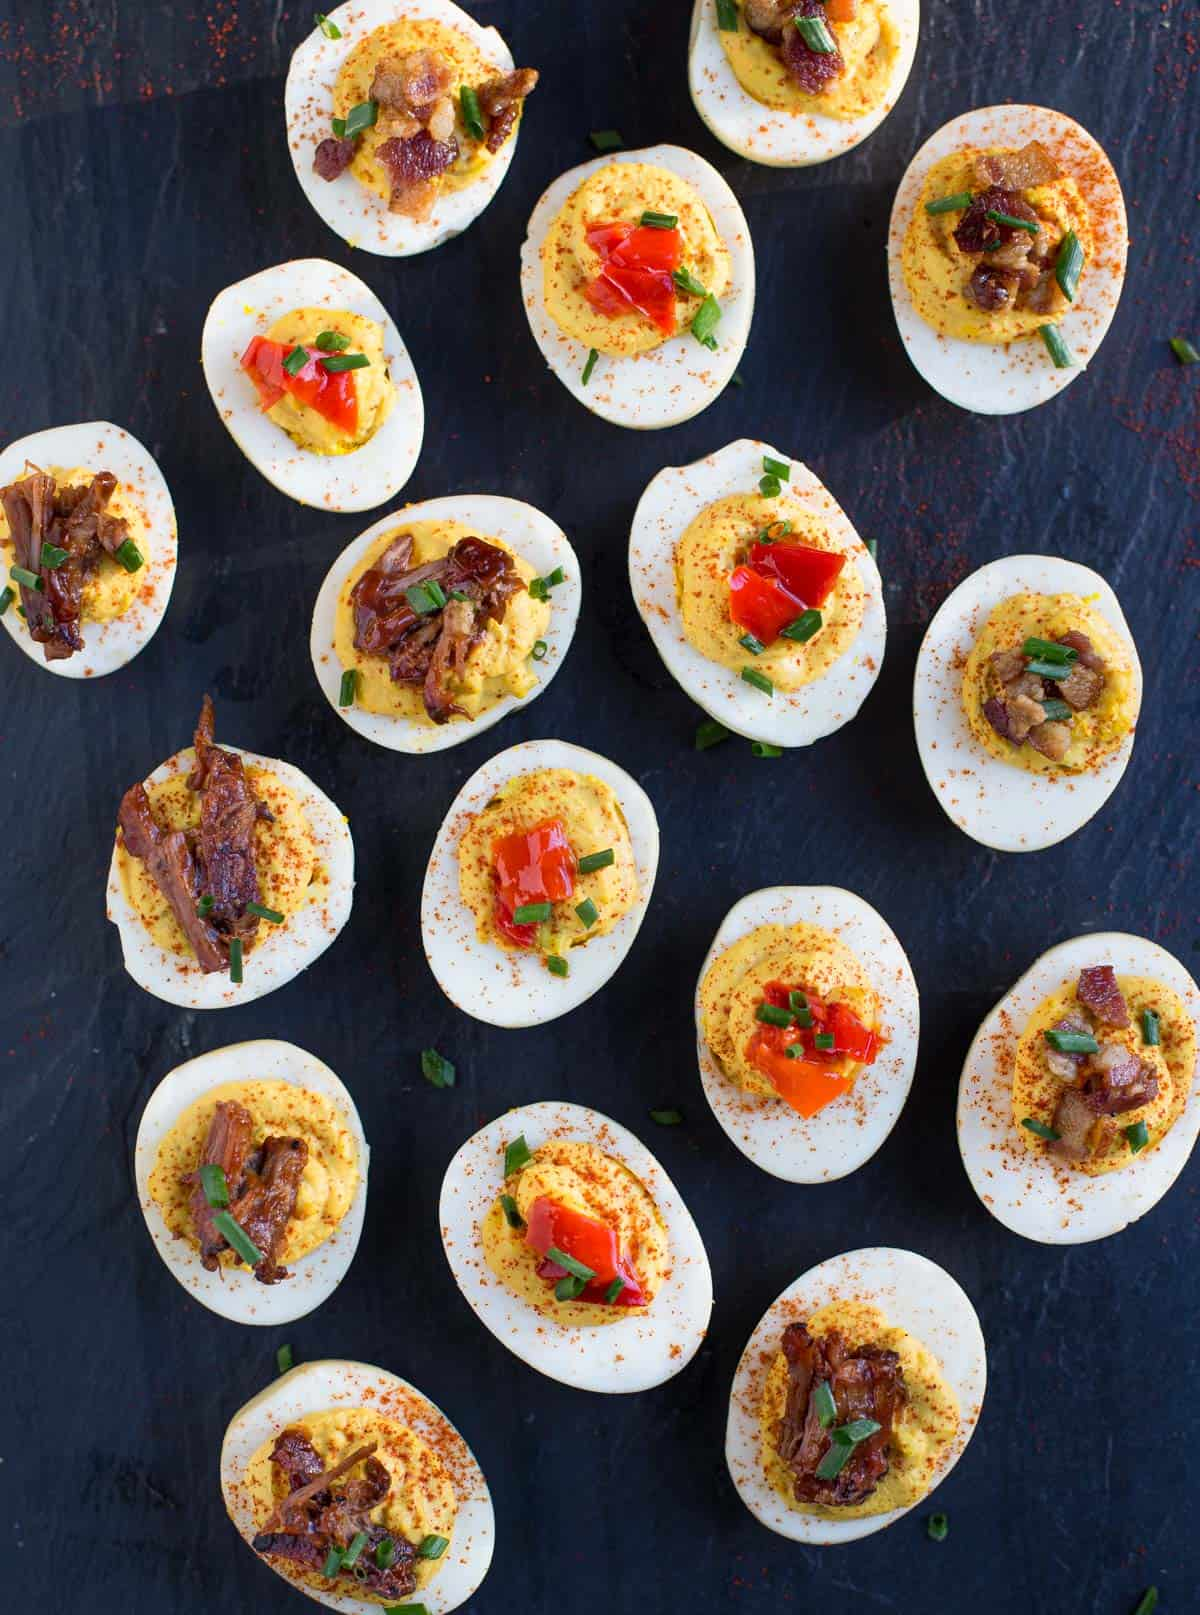 A platter full of smoked deviled eggs with mixed toppings